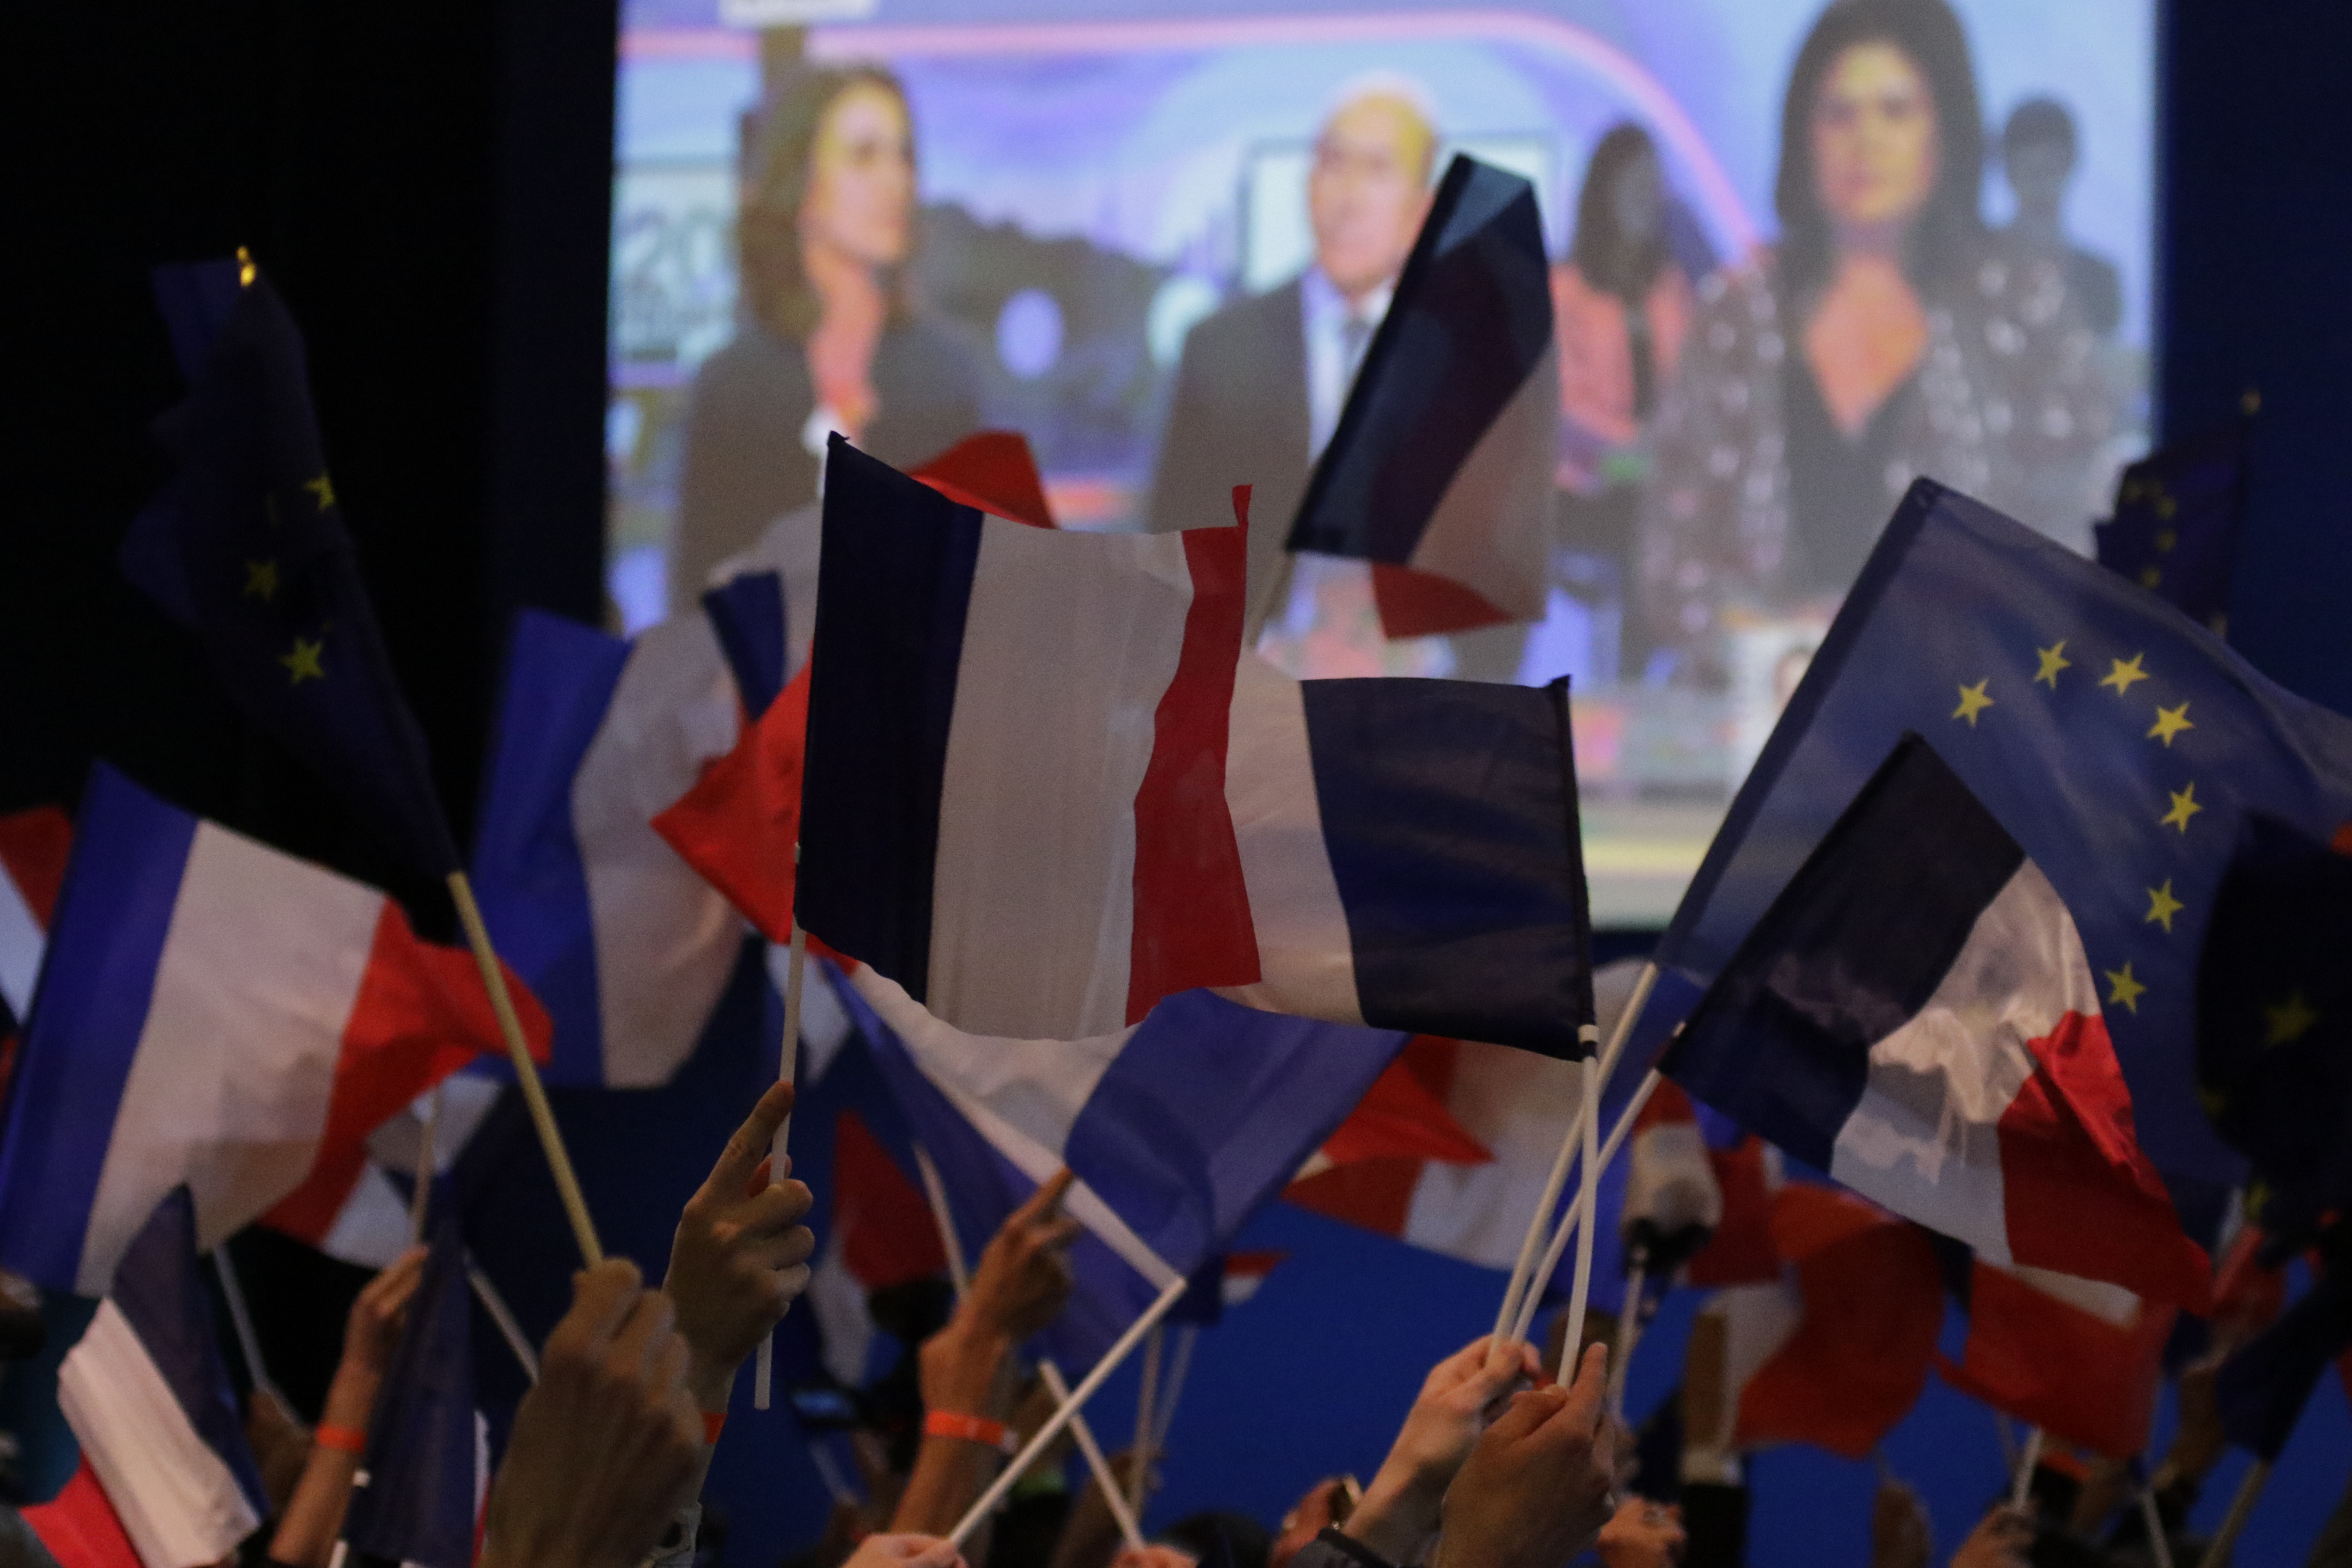 Macron supporters wave French and EU flags after the